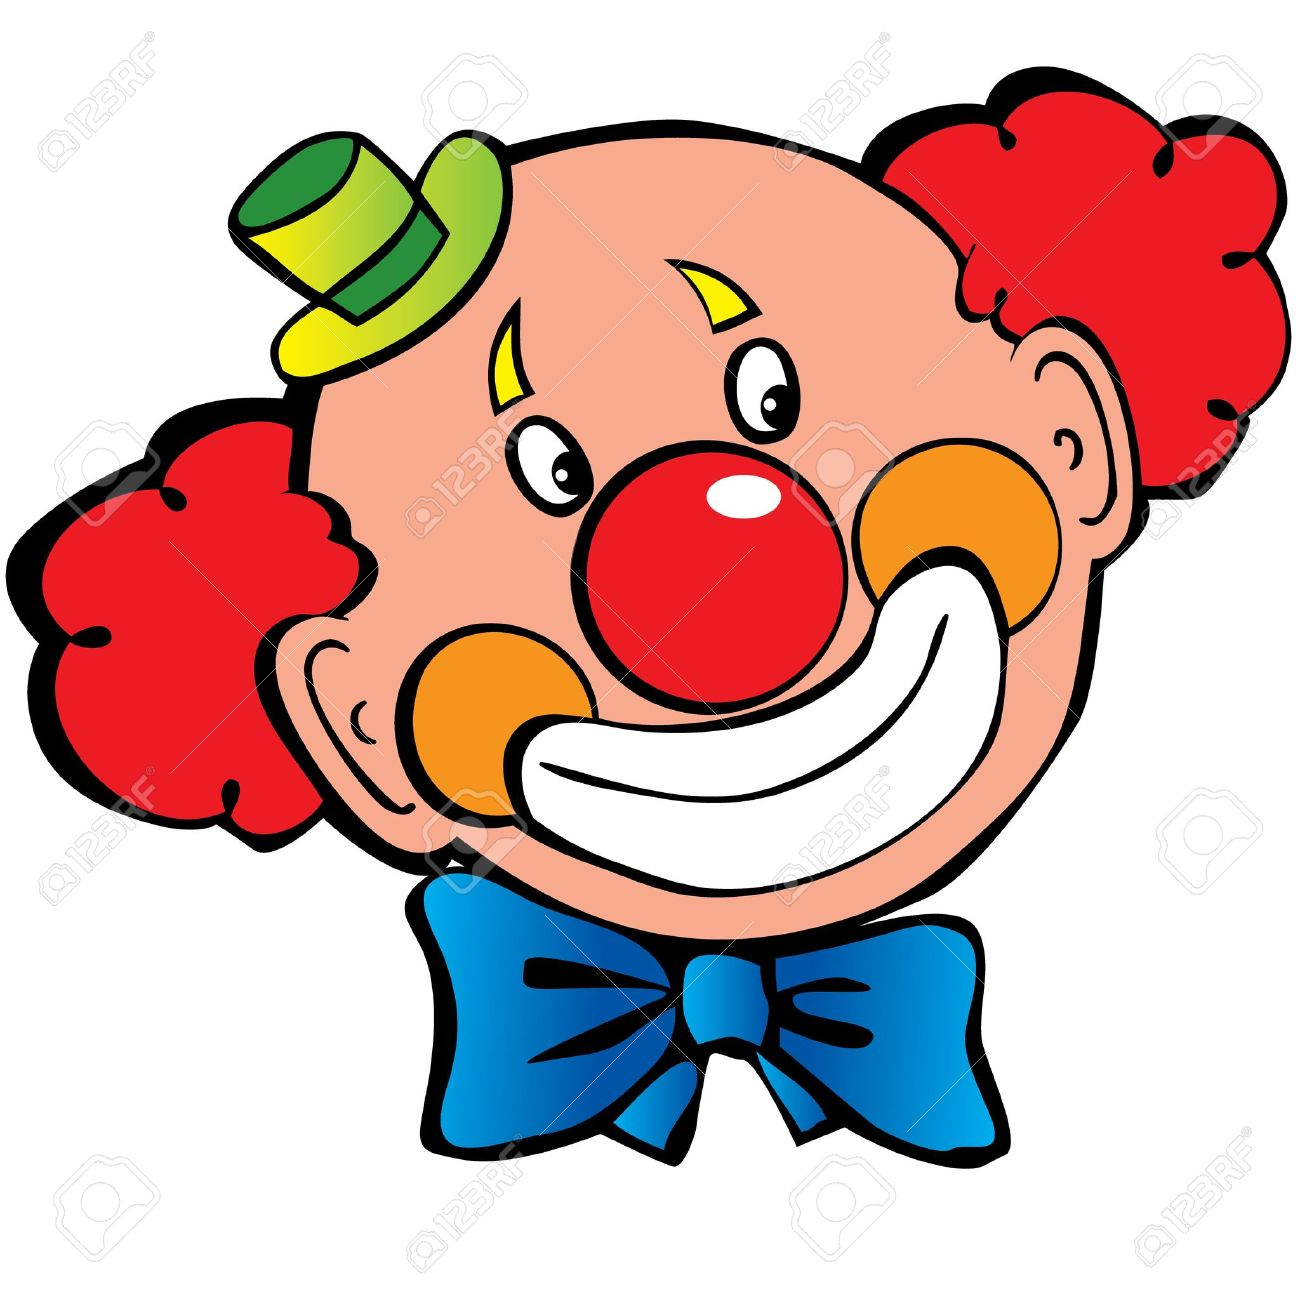 Clown clipart #14, Download drawings